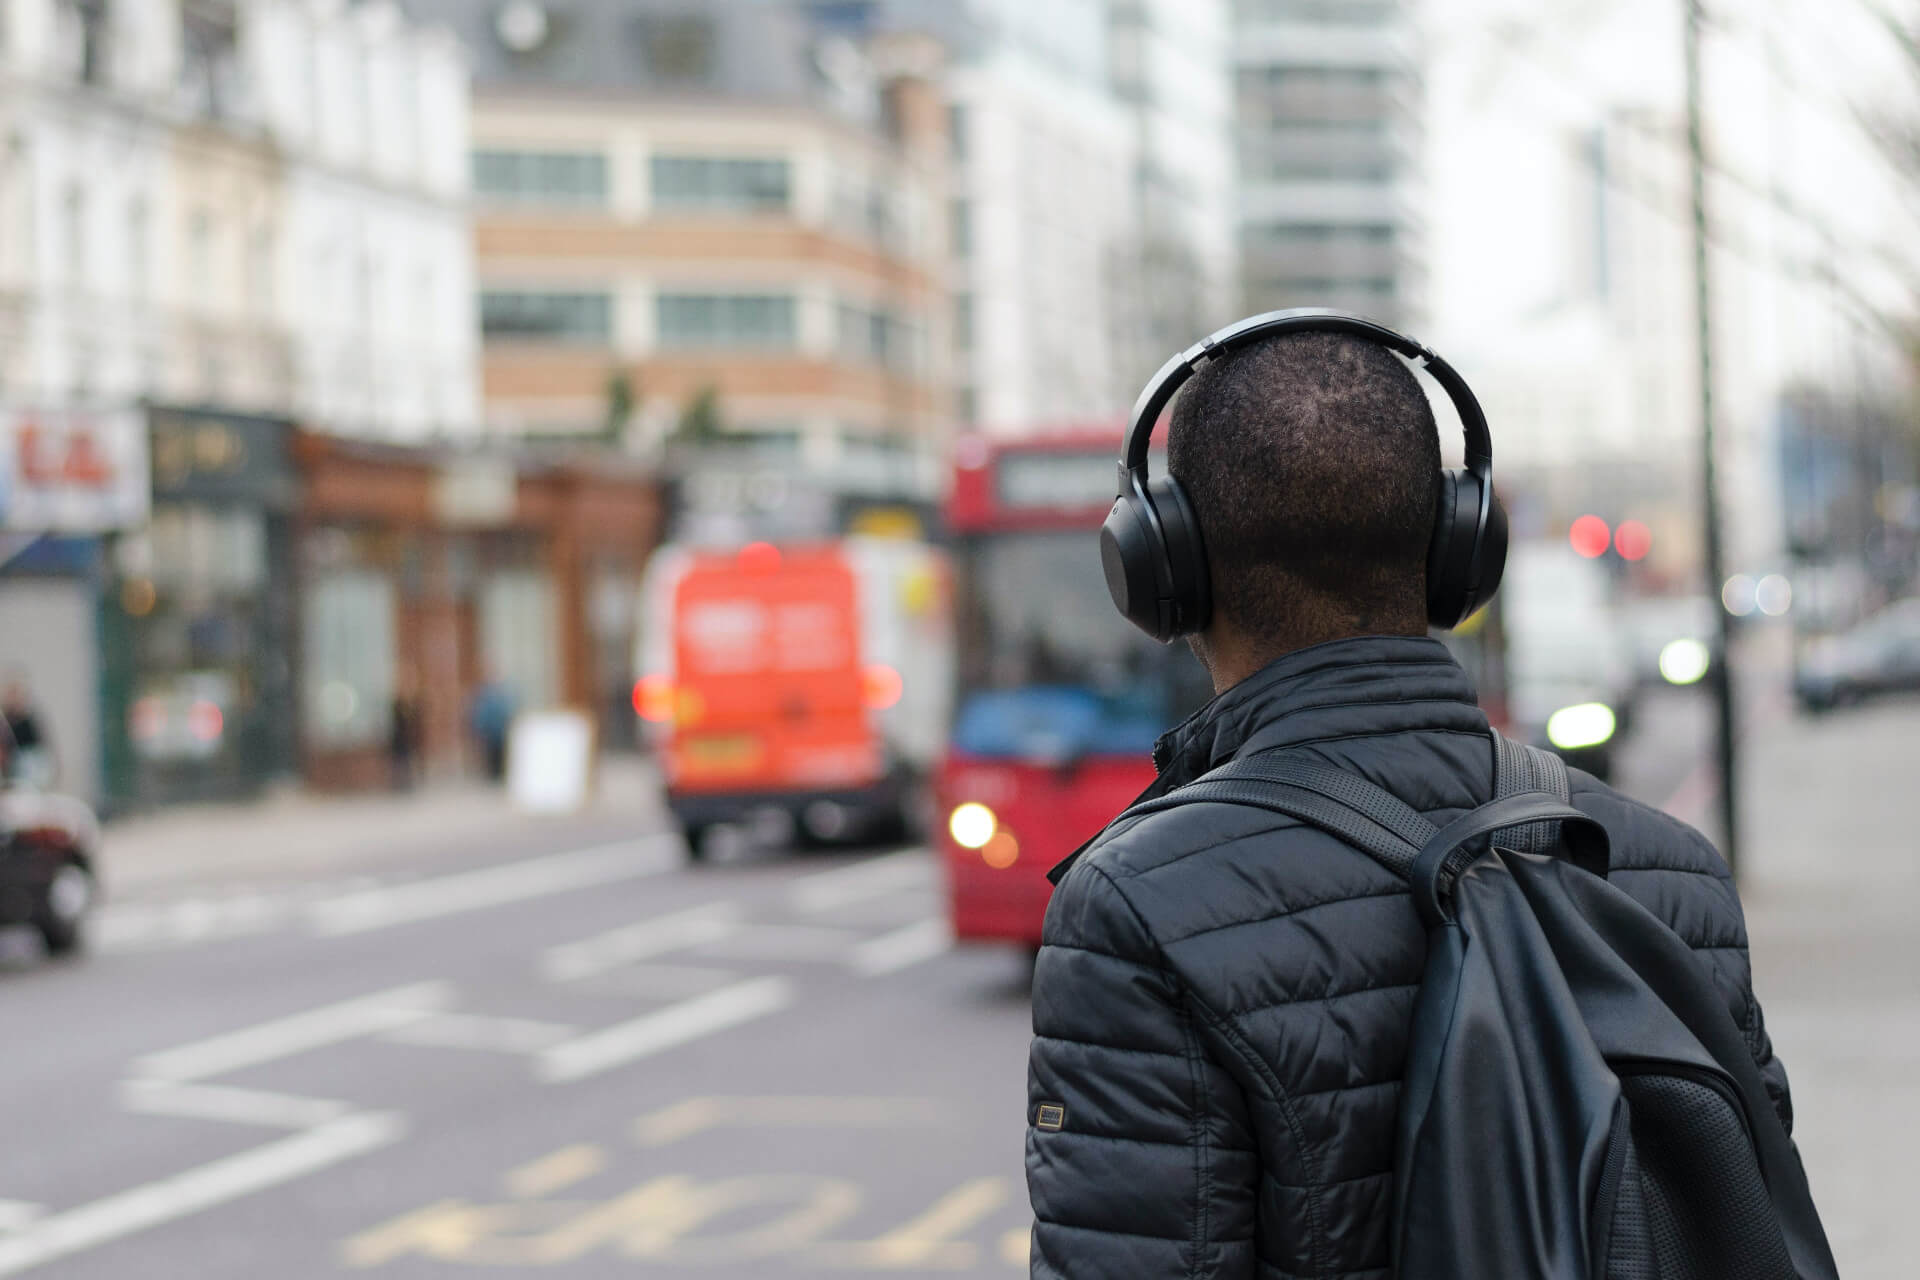 A man walking down a street weating headphones